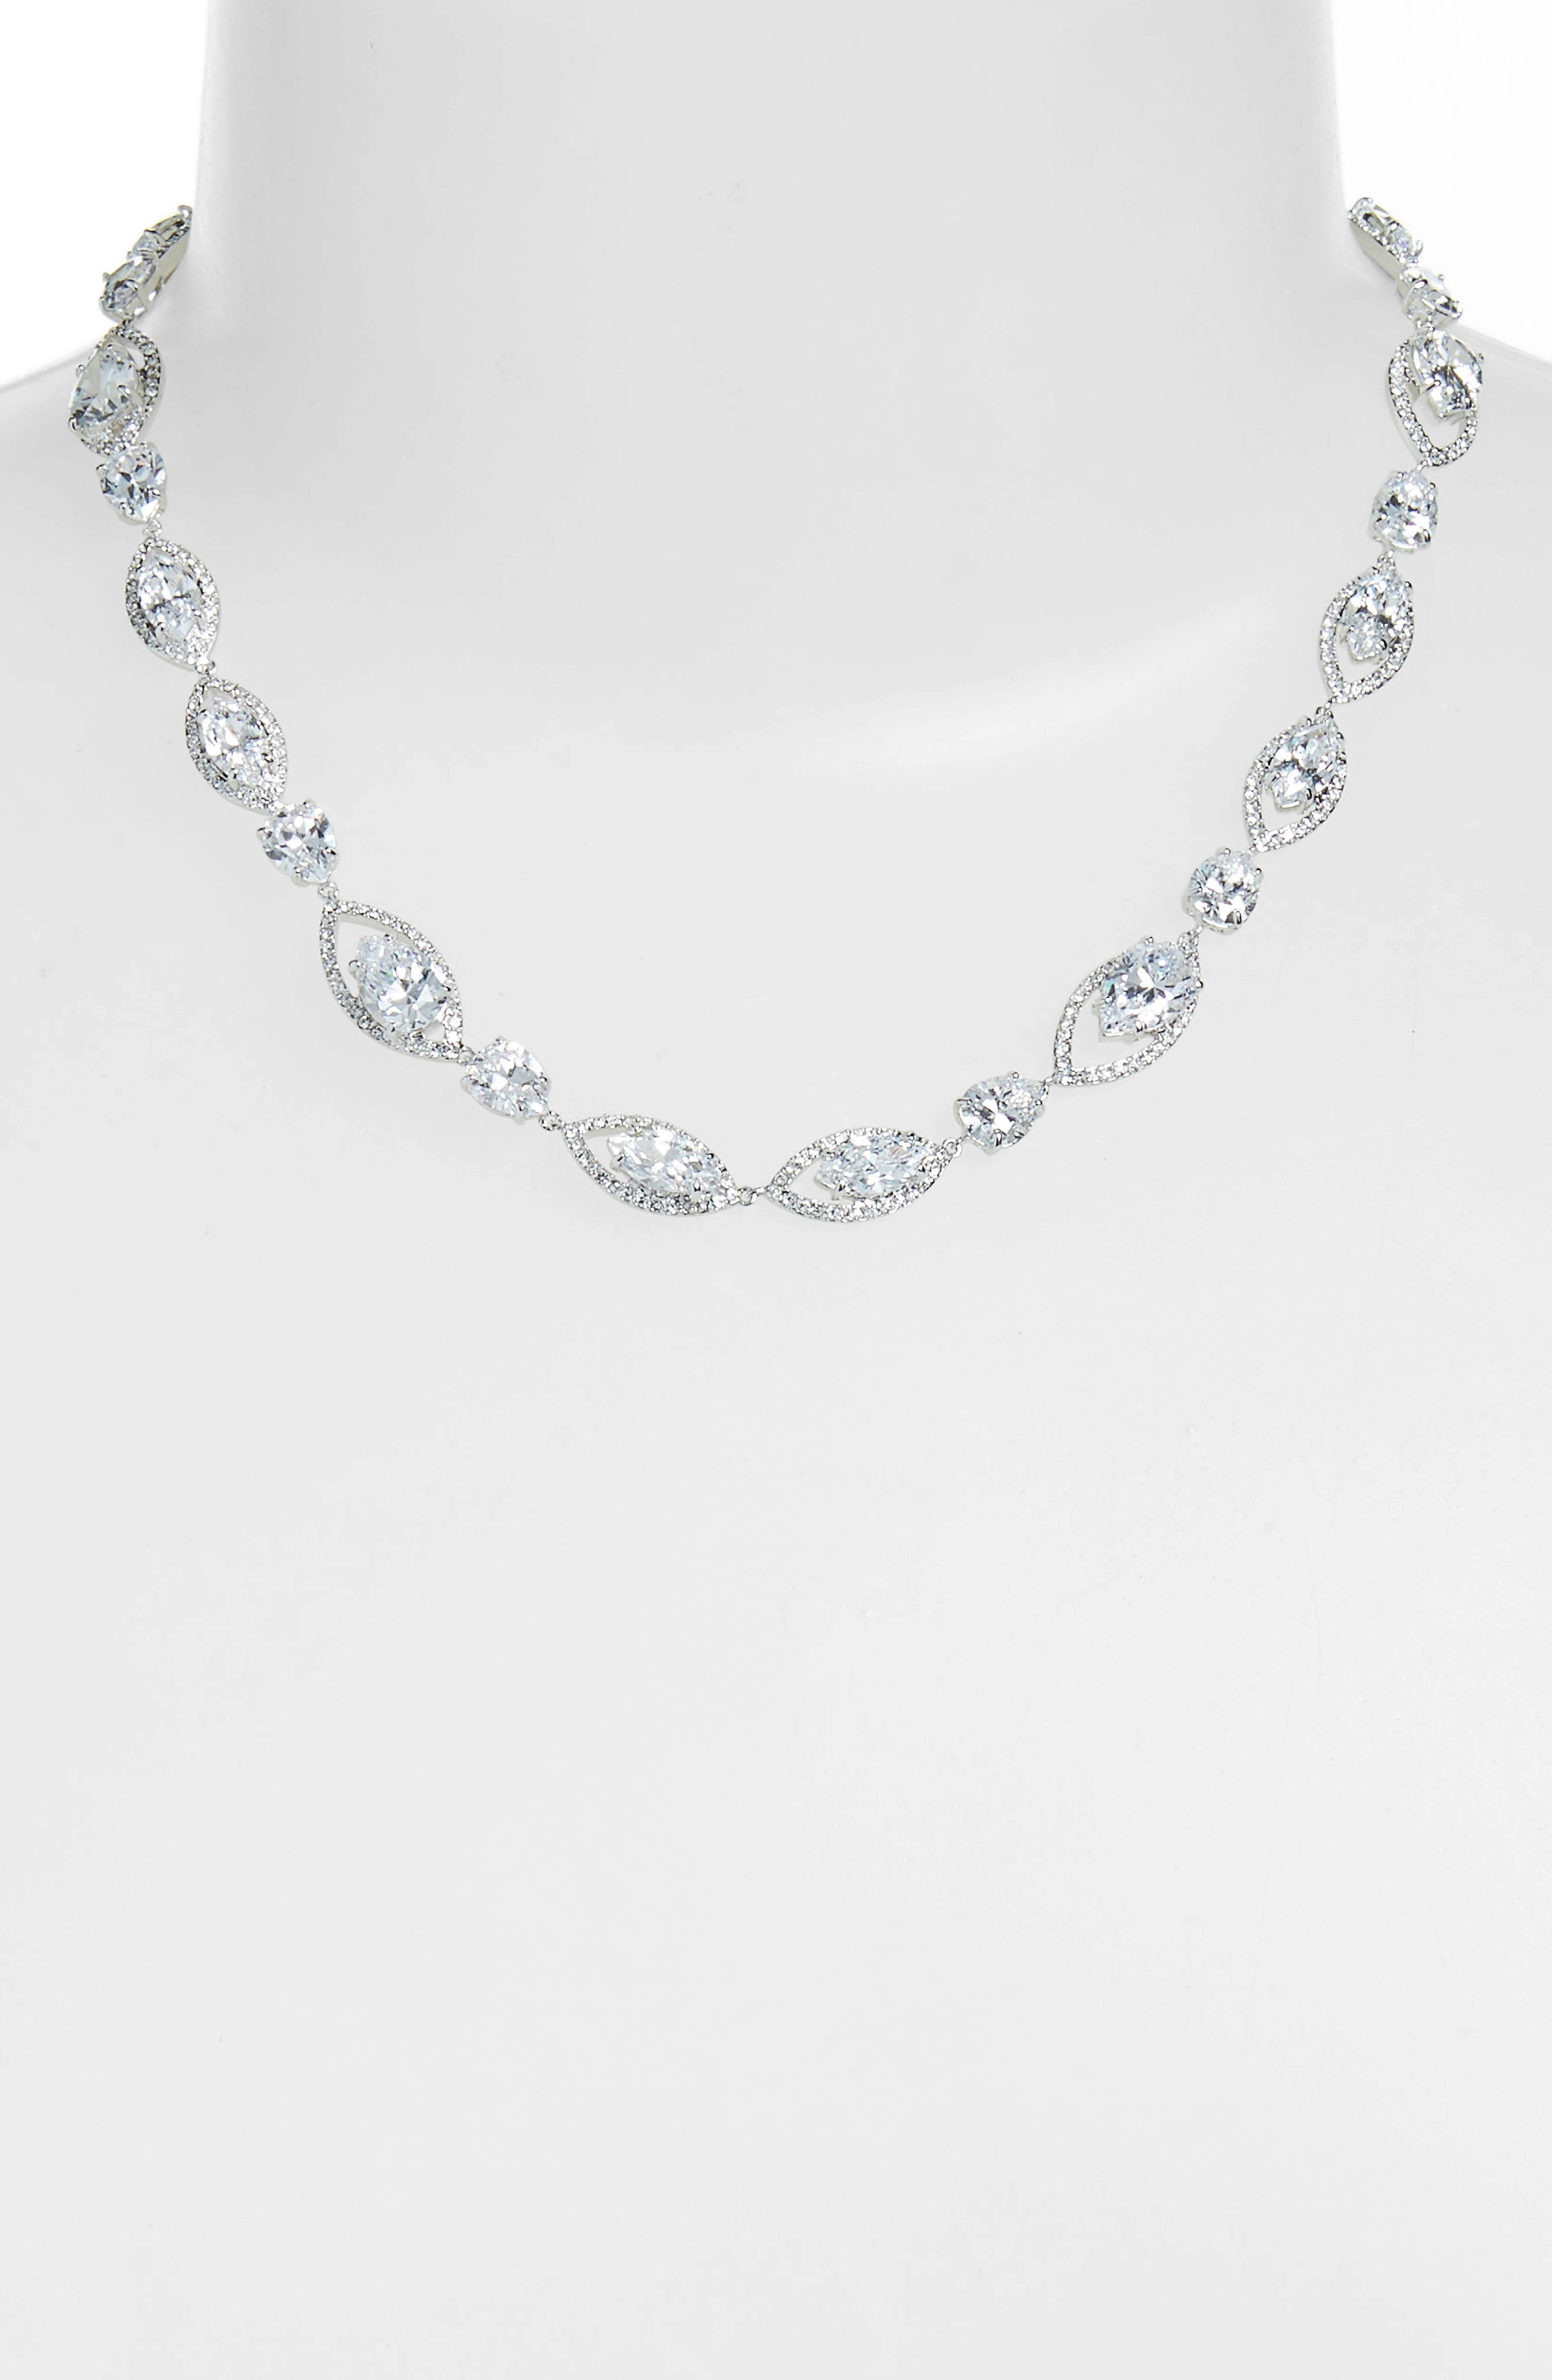 Navette Cubic Zirconia Collar Necklace,                             Alternate thumbnail 2, color,                             CLEAR- SILVER